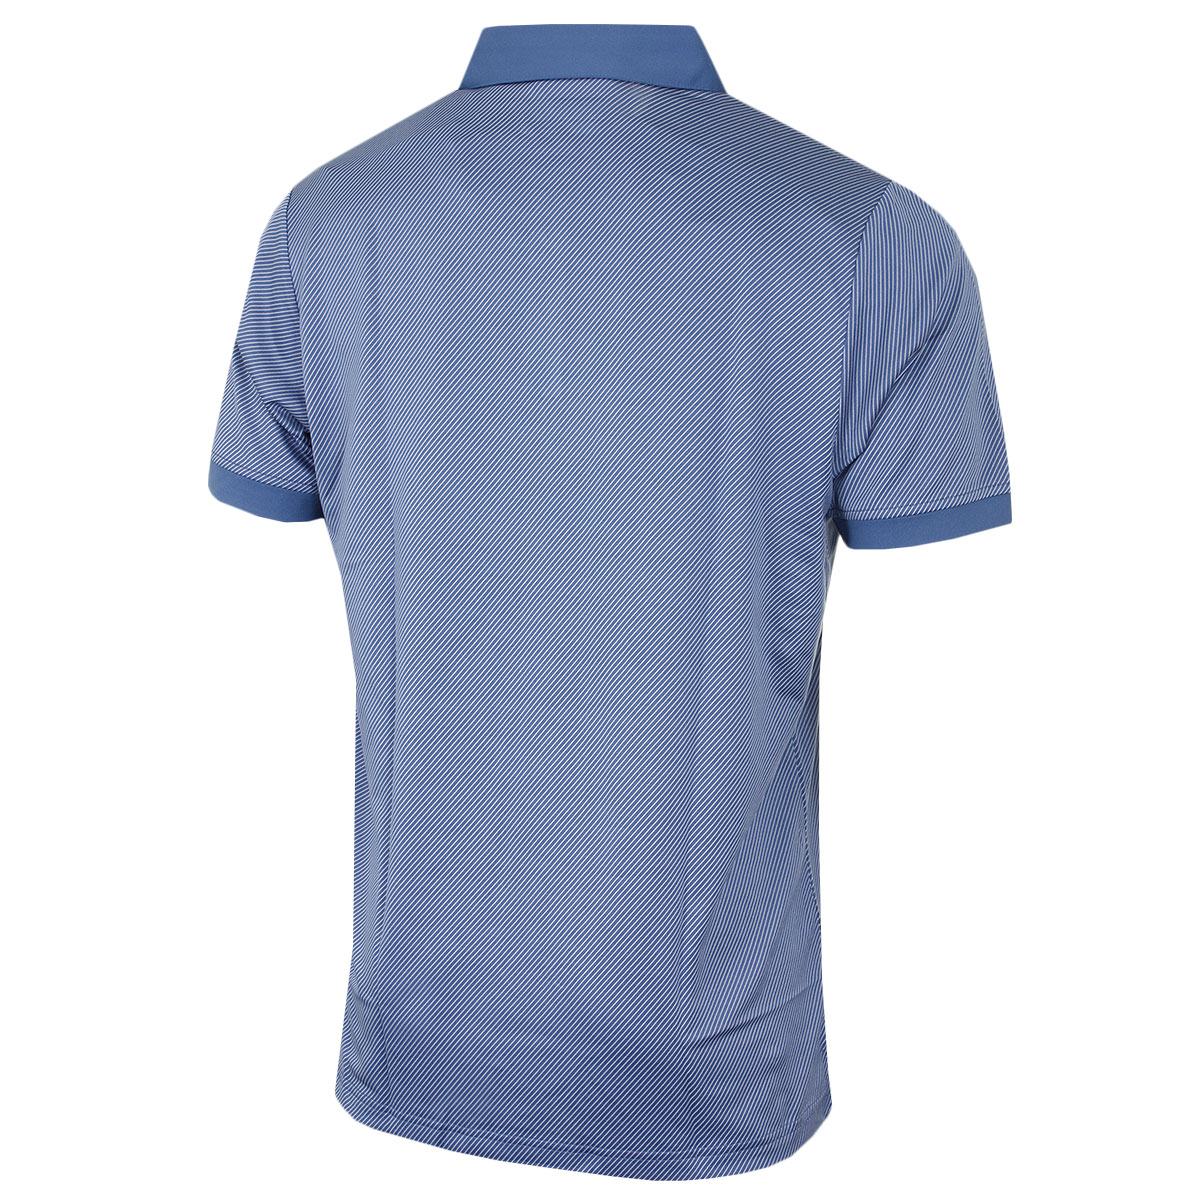 Callaway-Golf-Mens-Denim-Jacquard-Dri-Fit-Performance-Polo-Shirt-37-OFF-RRP thumbnail 24